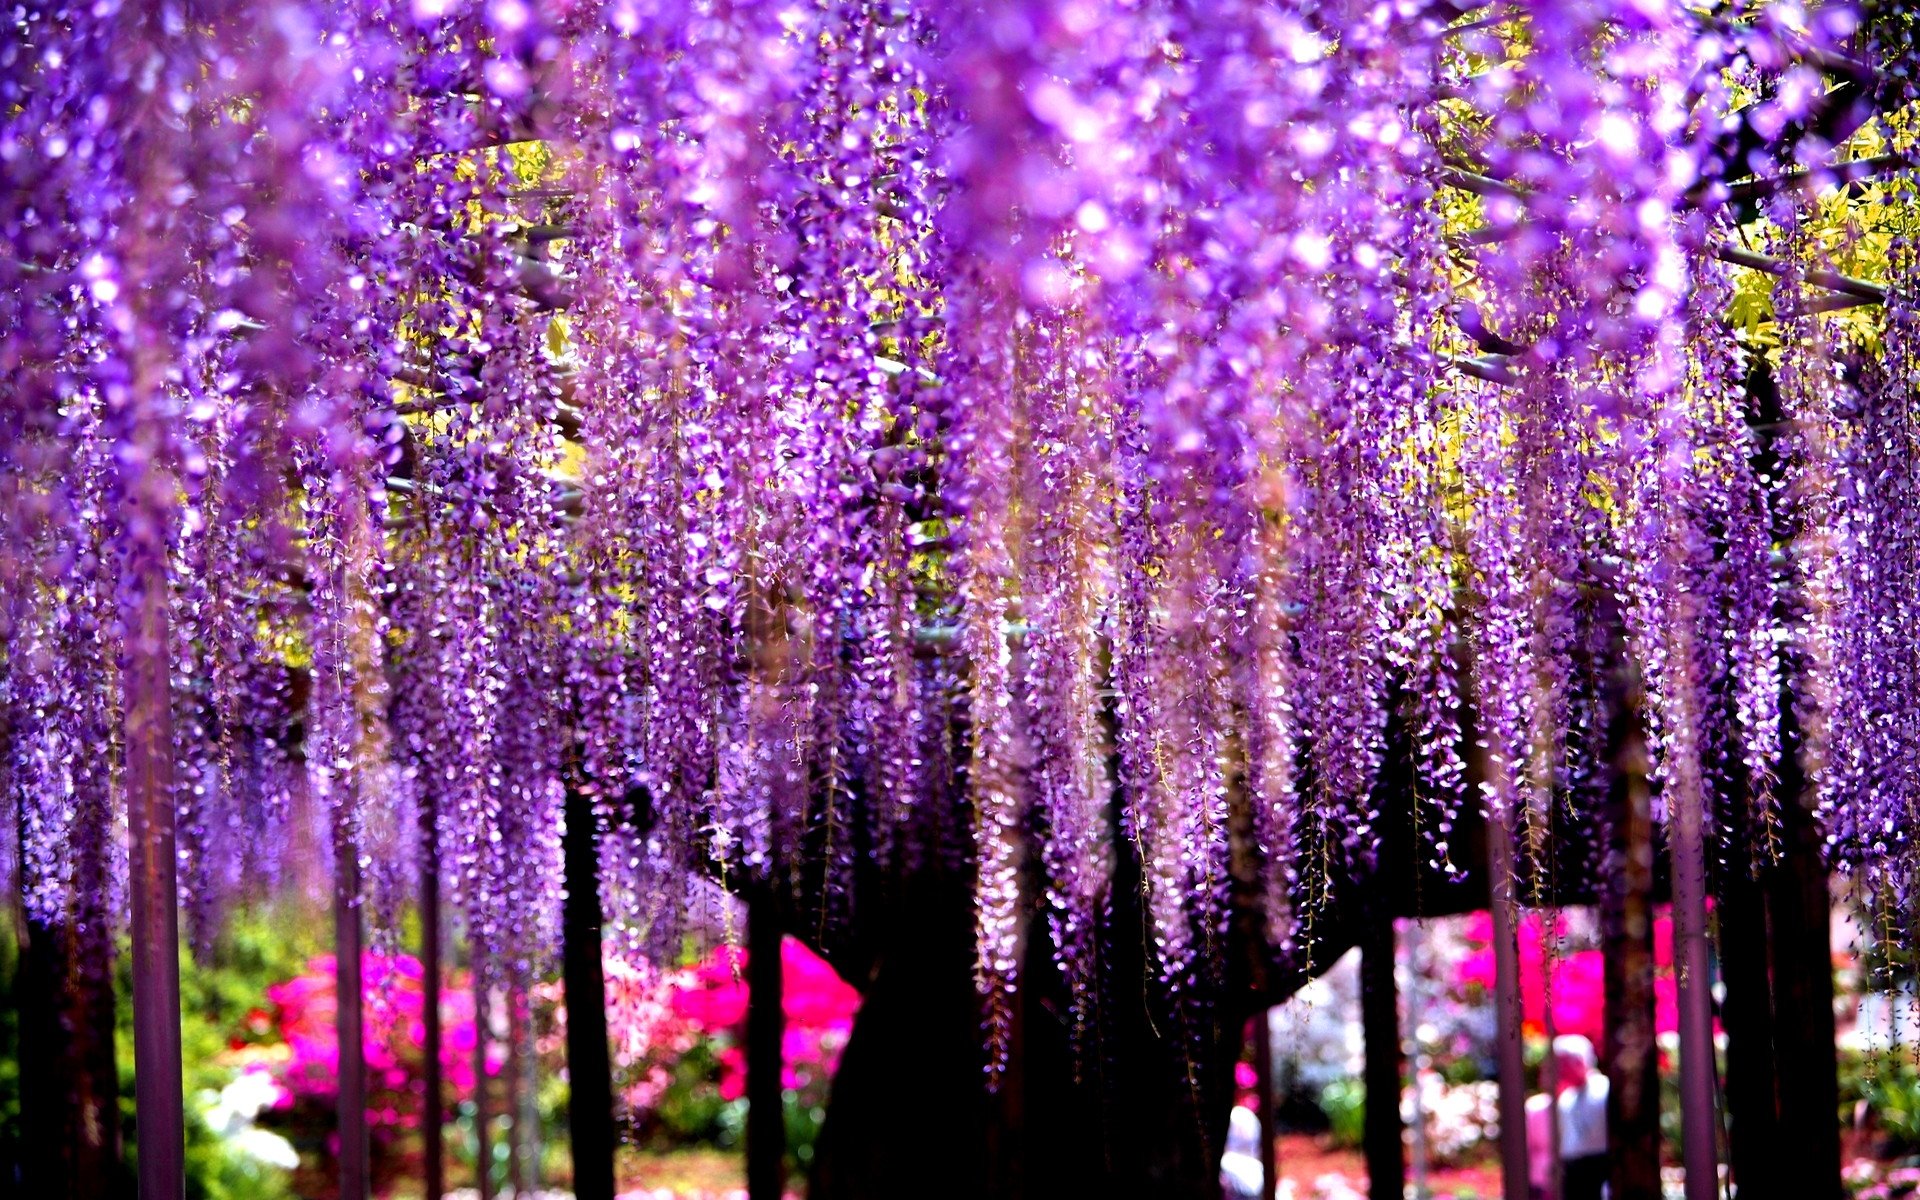 Wisteria Pictures 24451